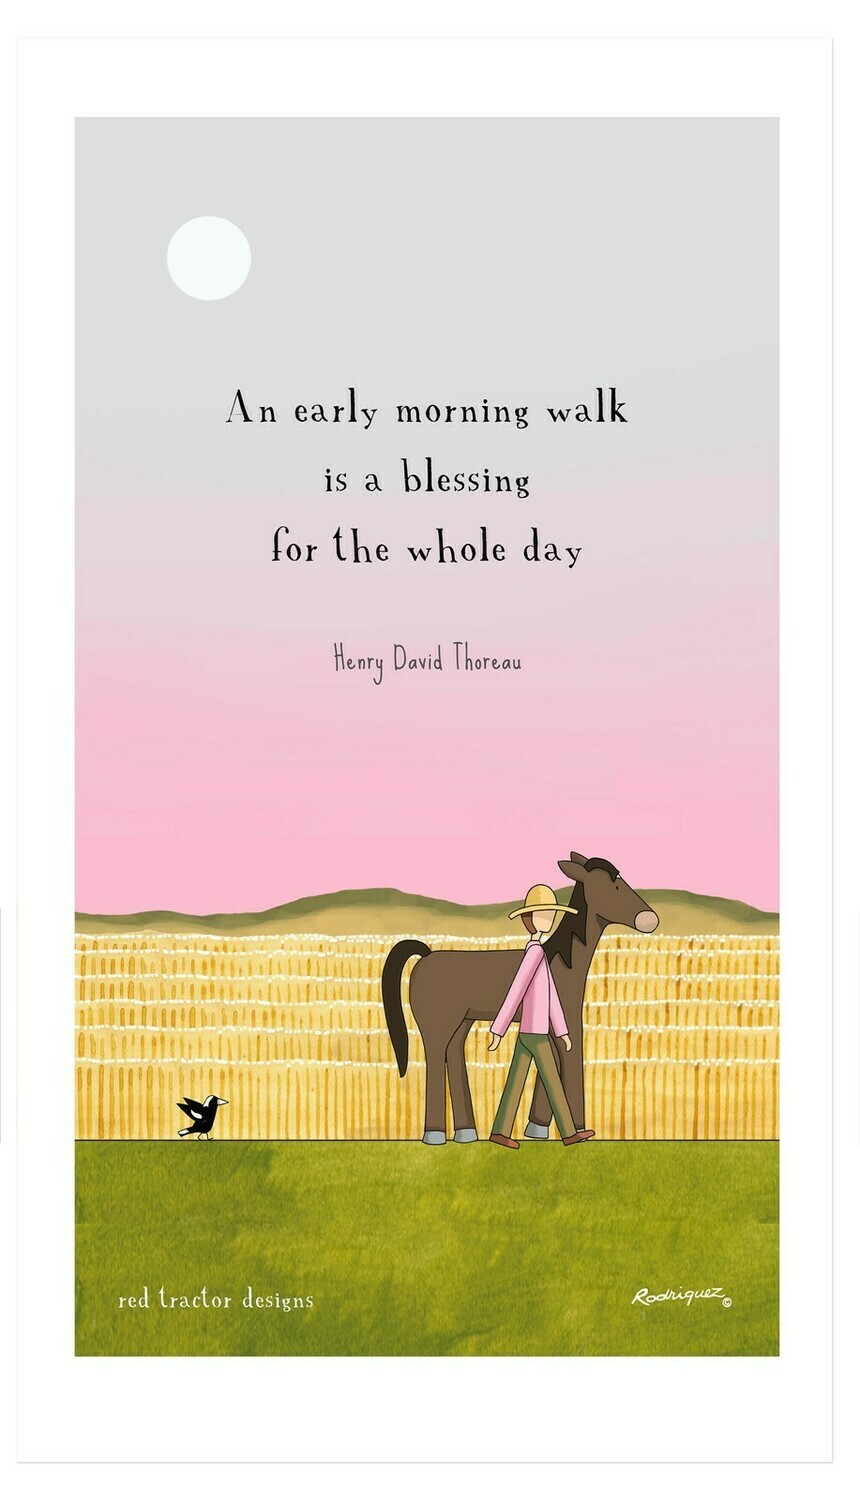 RODRIGUEZ Tea Towel - Red Tractor Designs - An Early Morning Walk